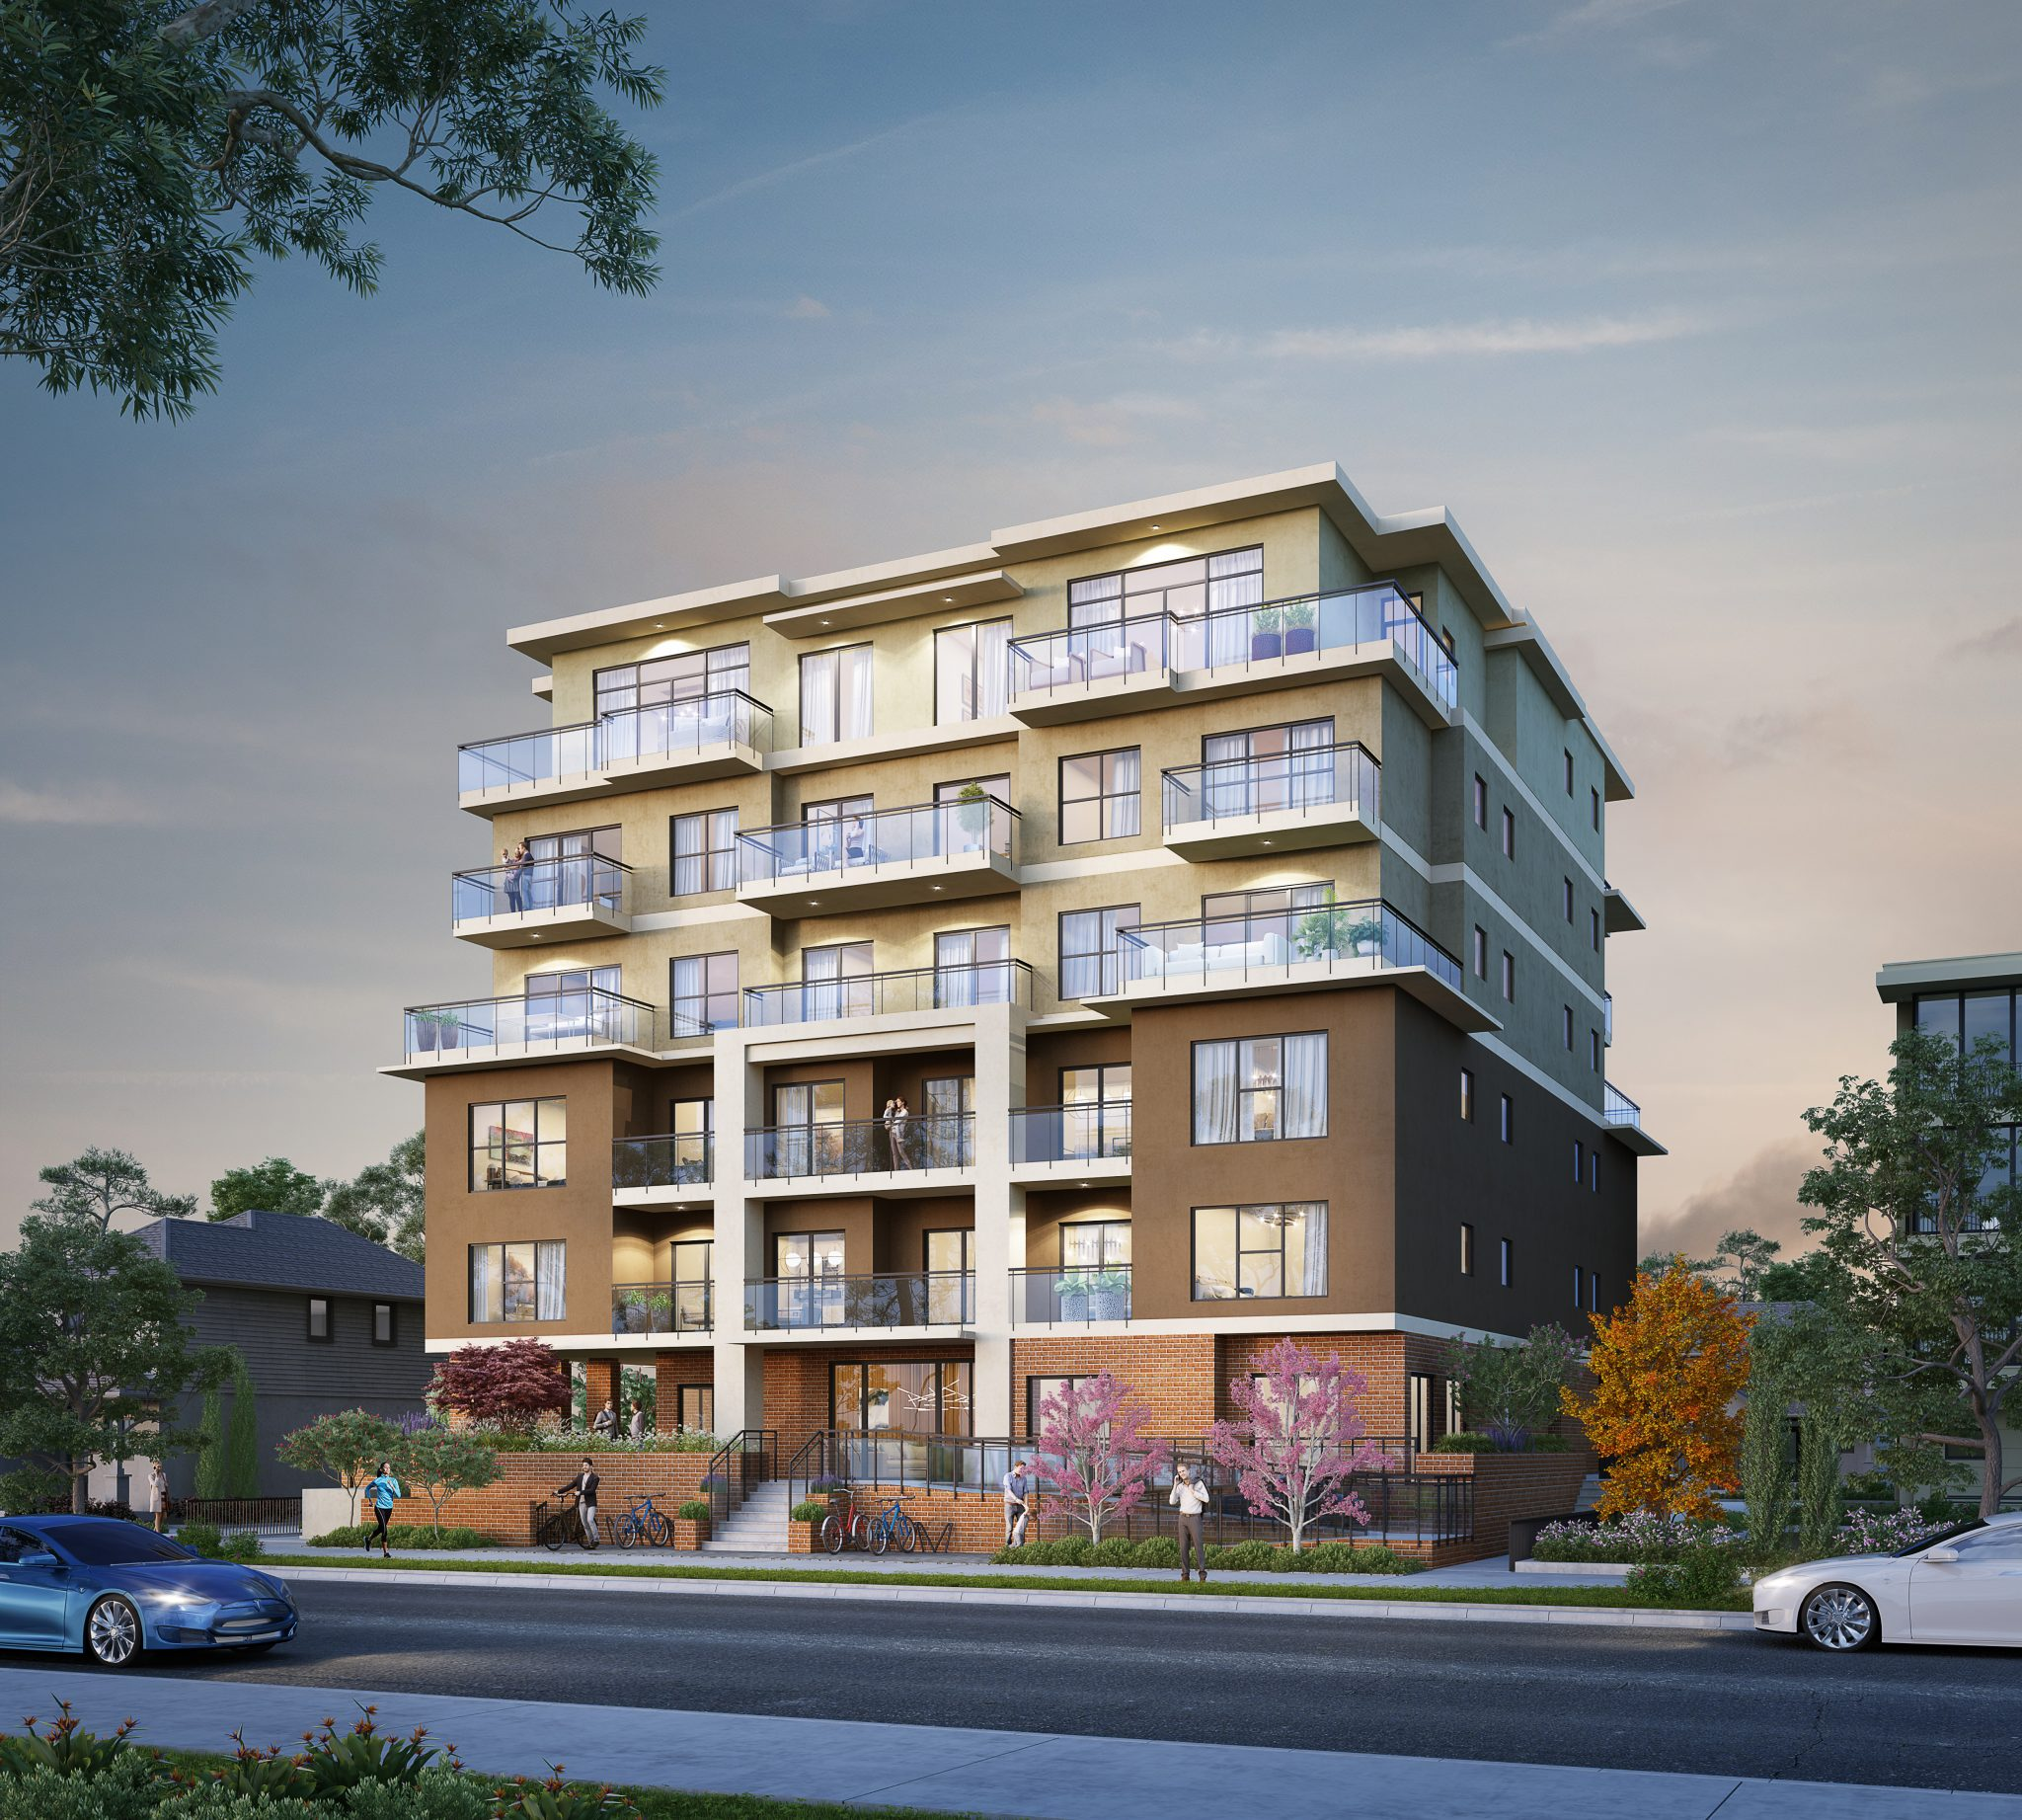 A contemporary collection of 1 bed + den, 2 bed, and 2 bed + den homes, Estella redefines the urban living experience in Port Coquitlam. With premium city and mountain views, an Estella home is the ideal backdrop to those precious moments at home.